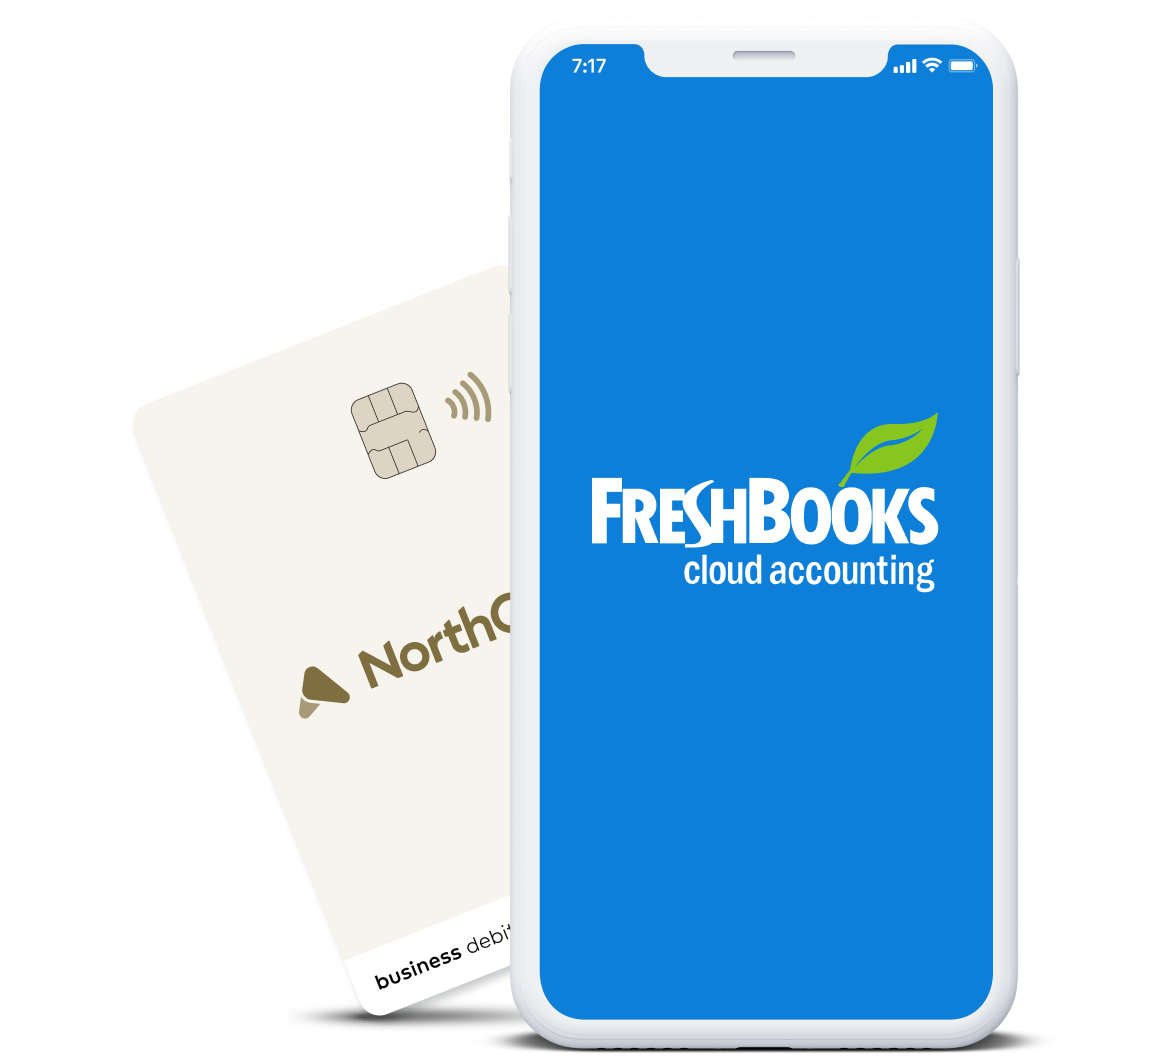 Freshbooks logo on a white smartphone